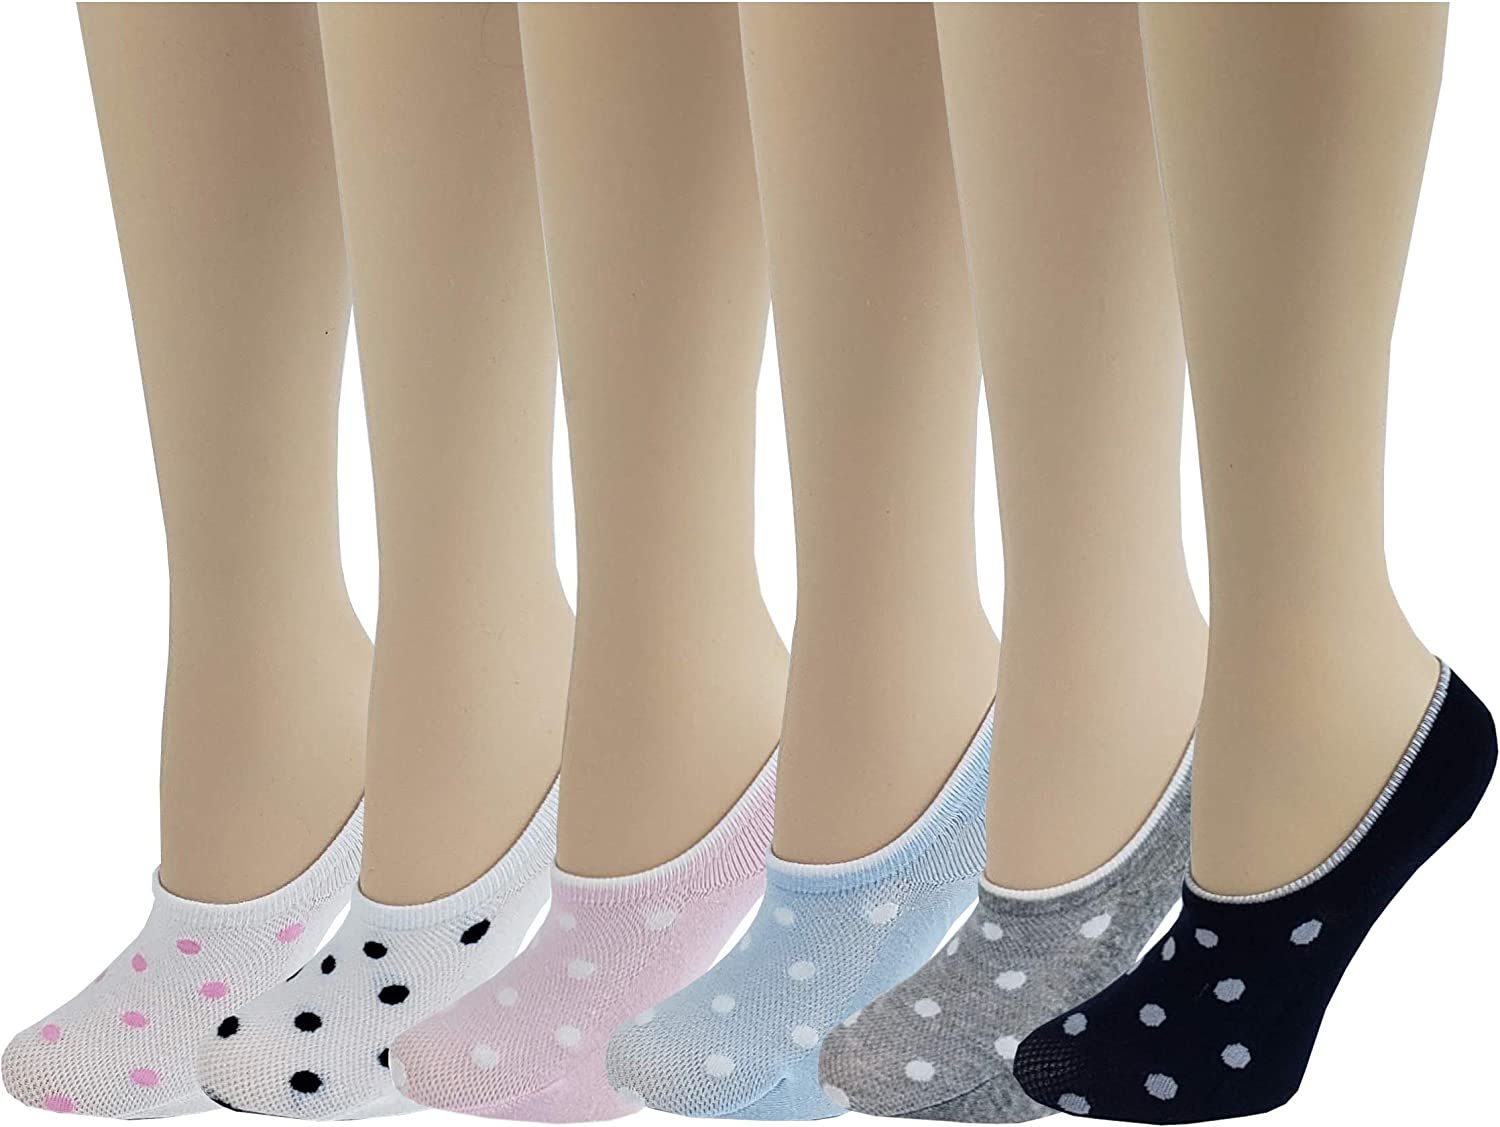 Classic No Show Socks Women Limited time trial price Cotton Spandex invisible Low Cut Non Casual